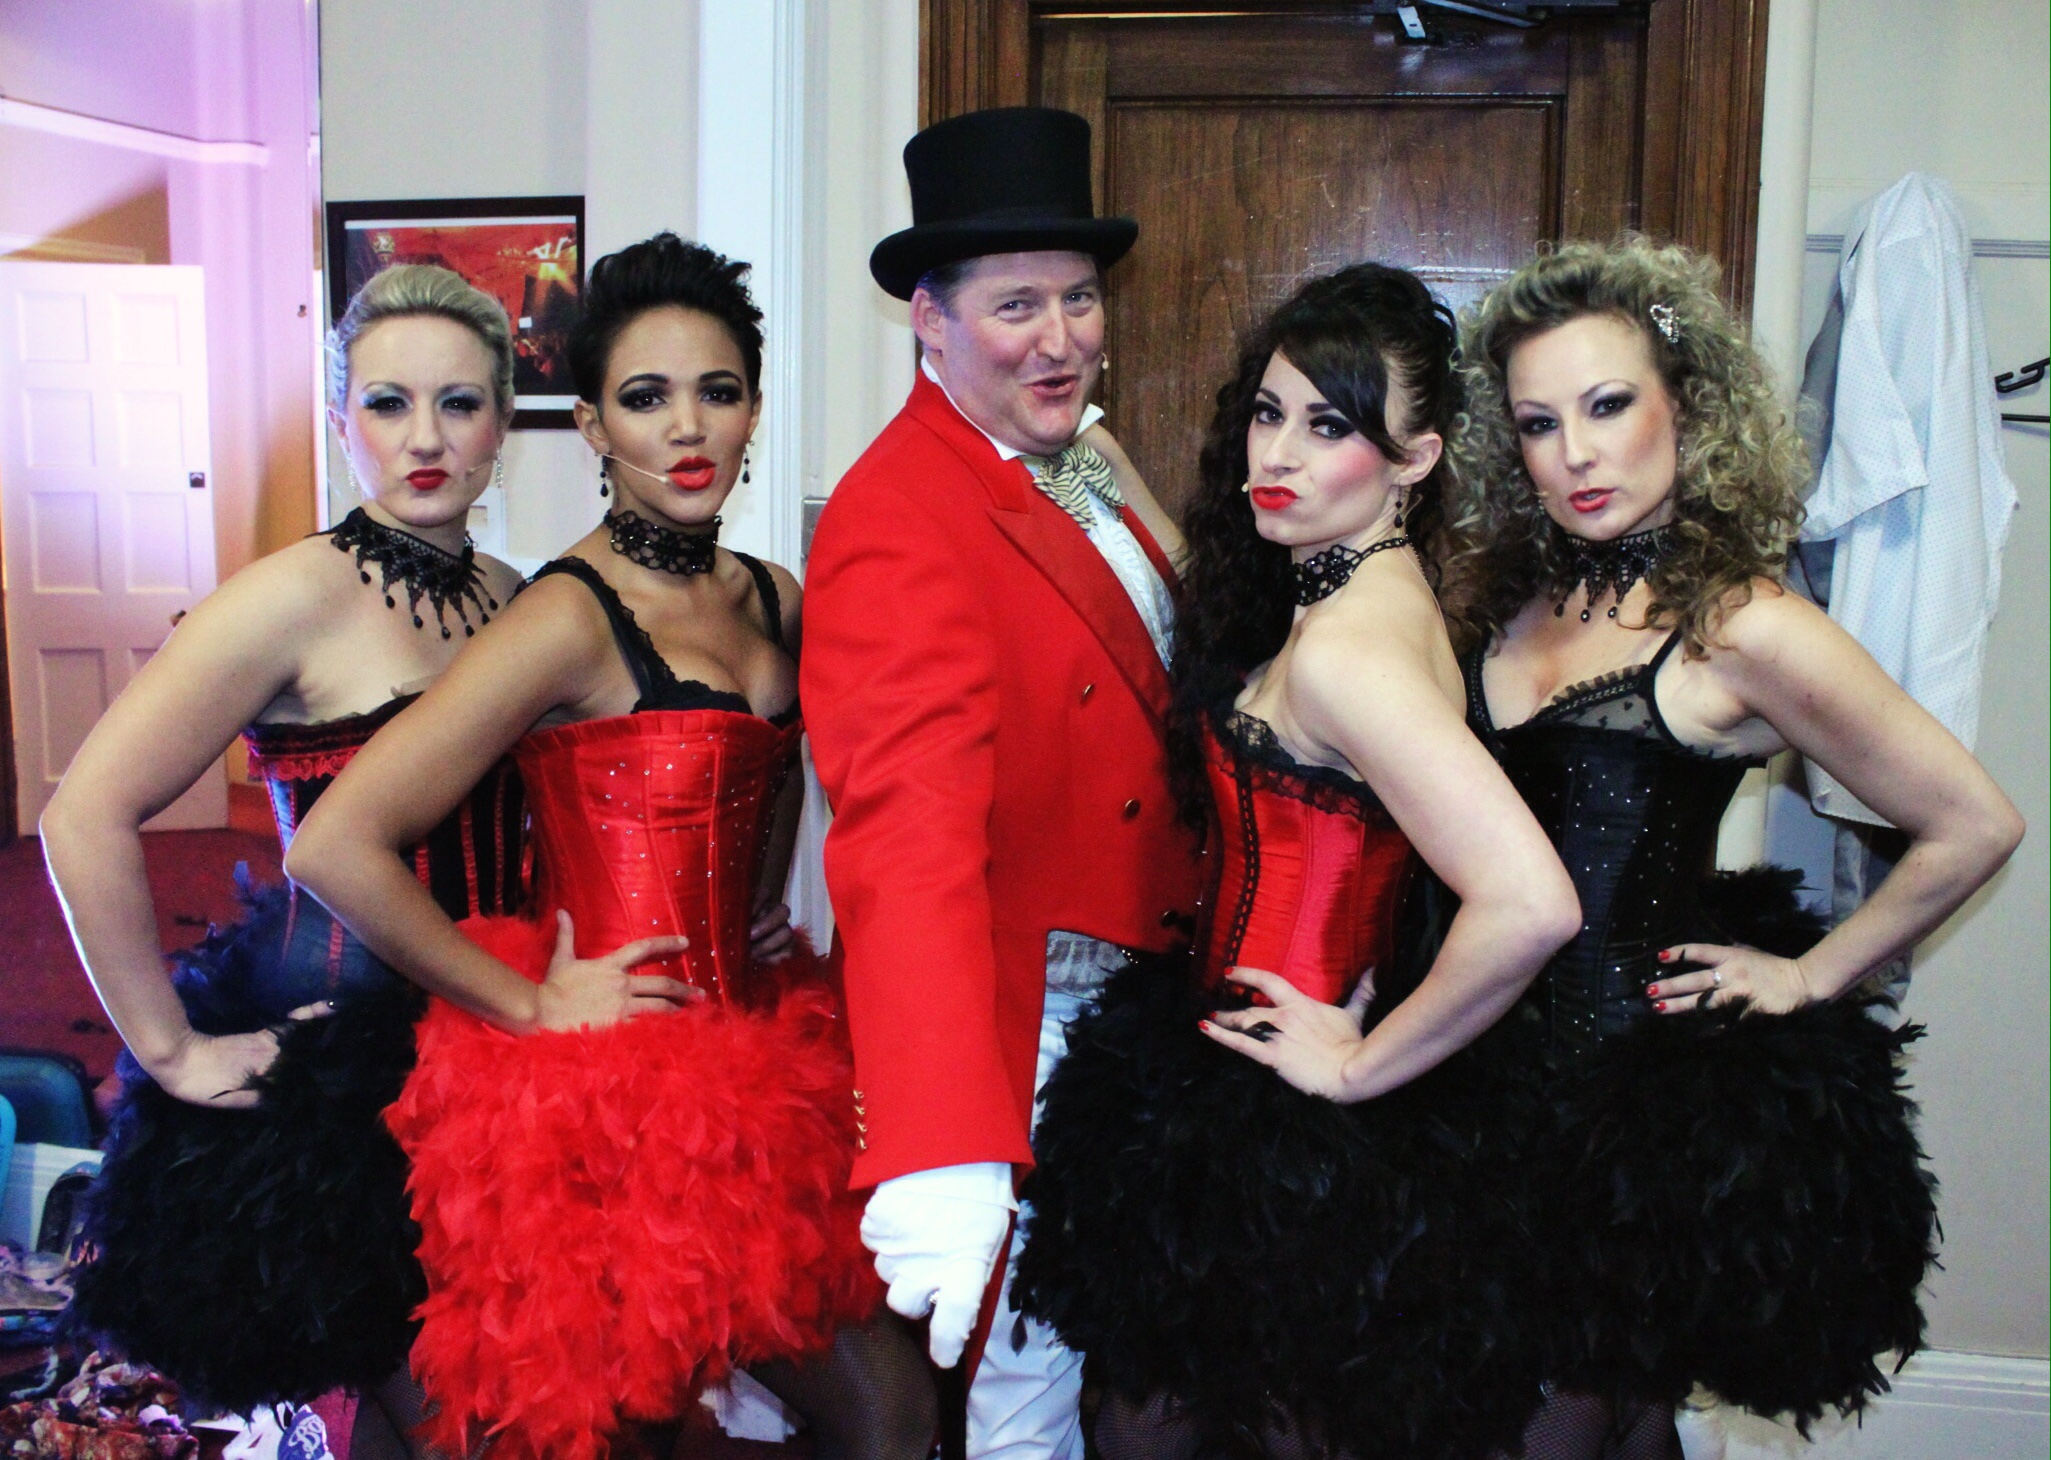 Moulin Rouge night at the Porchester Hall, London